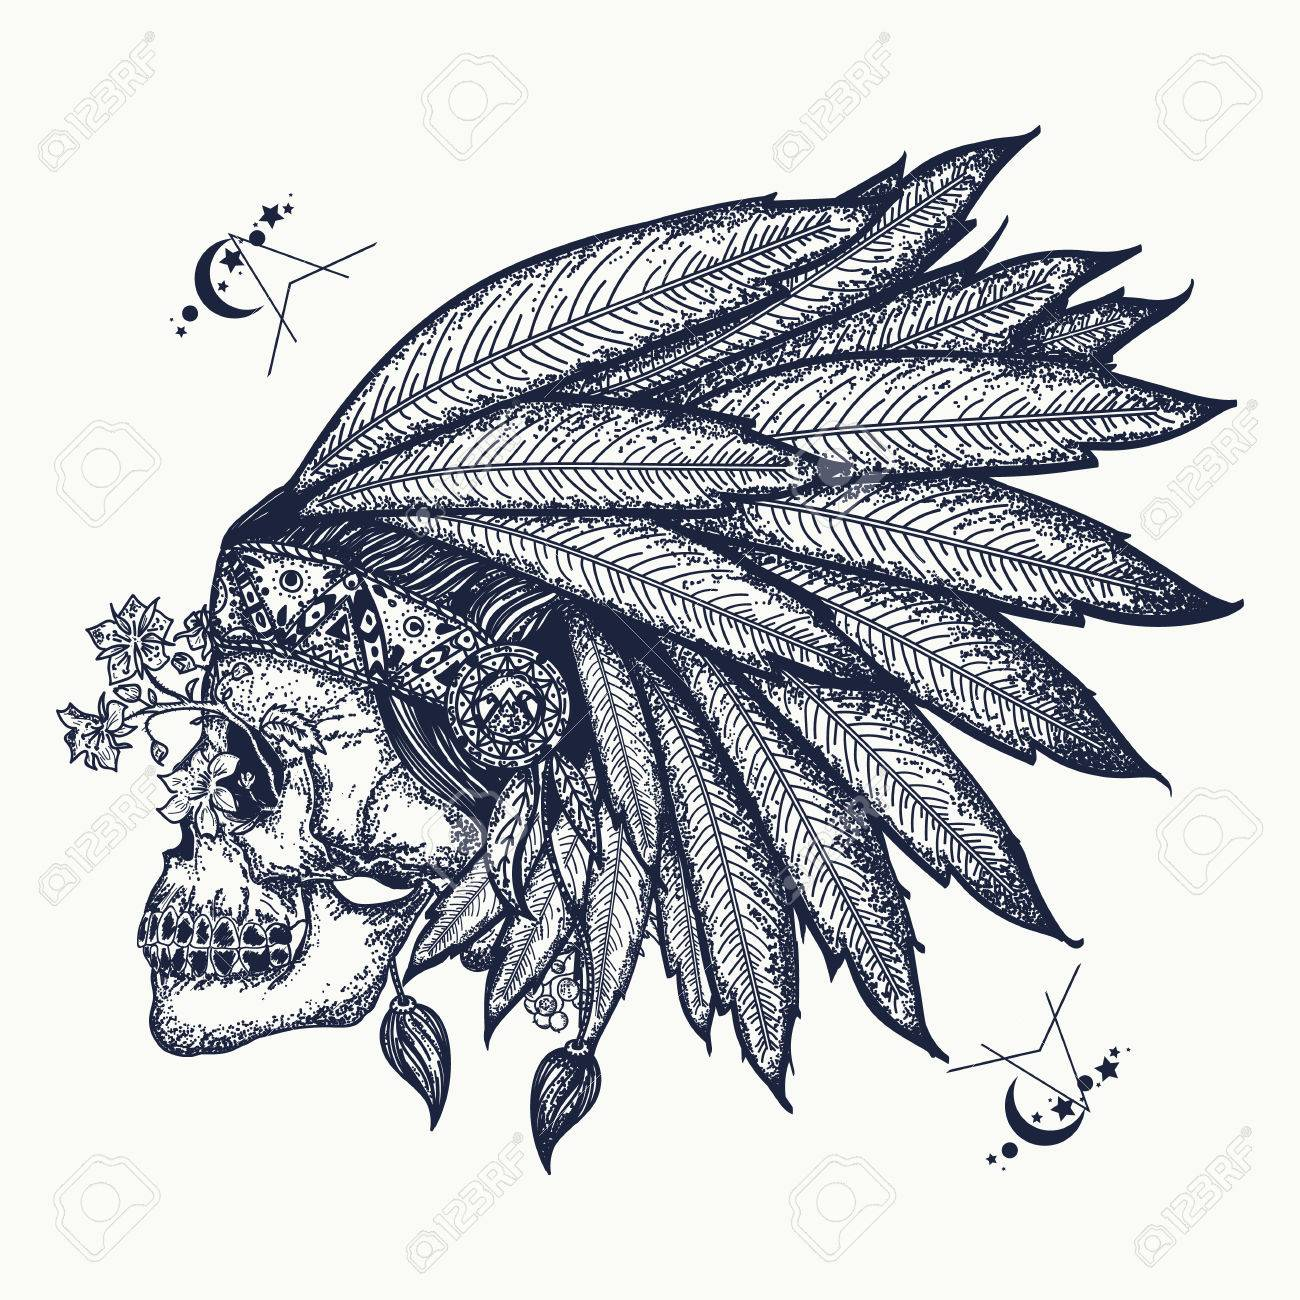 97779d812a73e Indian skull tattoo art. Warrior symbol. Native American indian feather  headdress with human skull